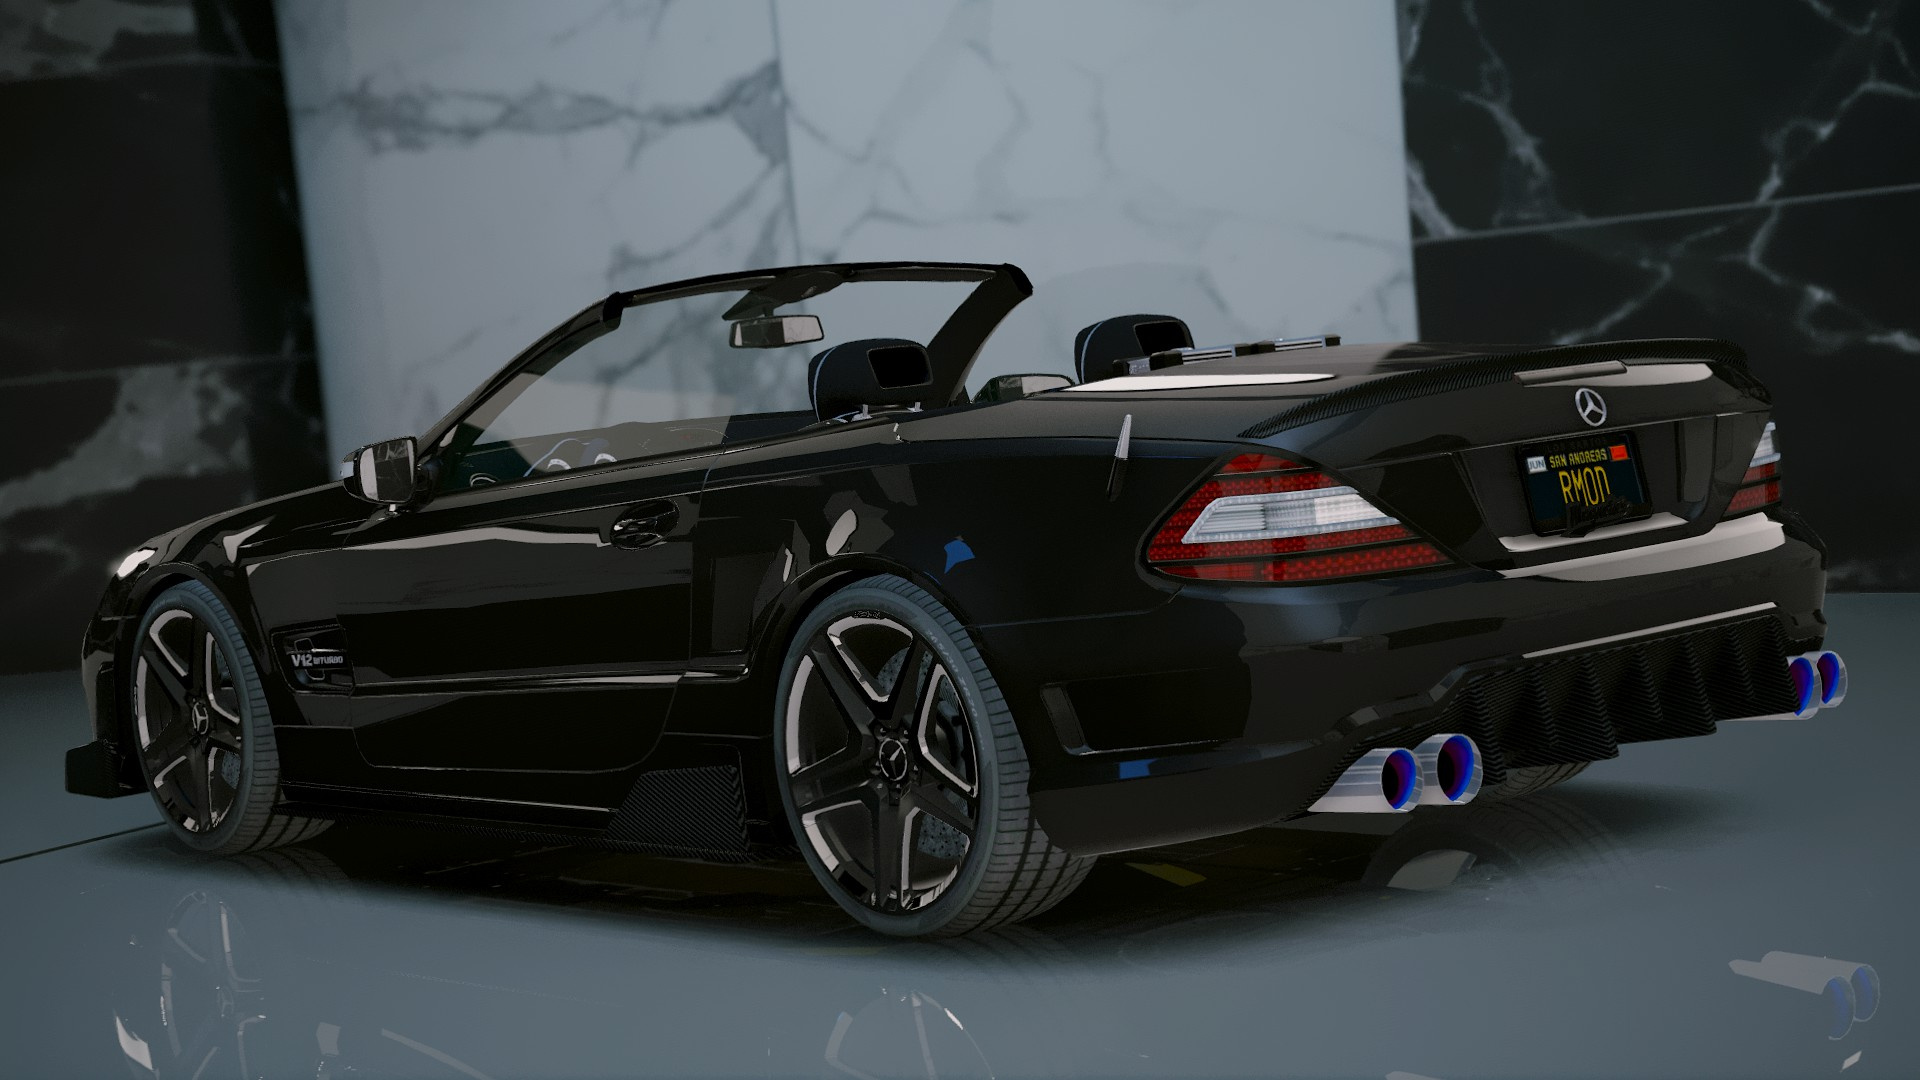 Mercedes benz sl 63 amg add on tuning gta5 for Mercedes benz tuning